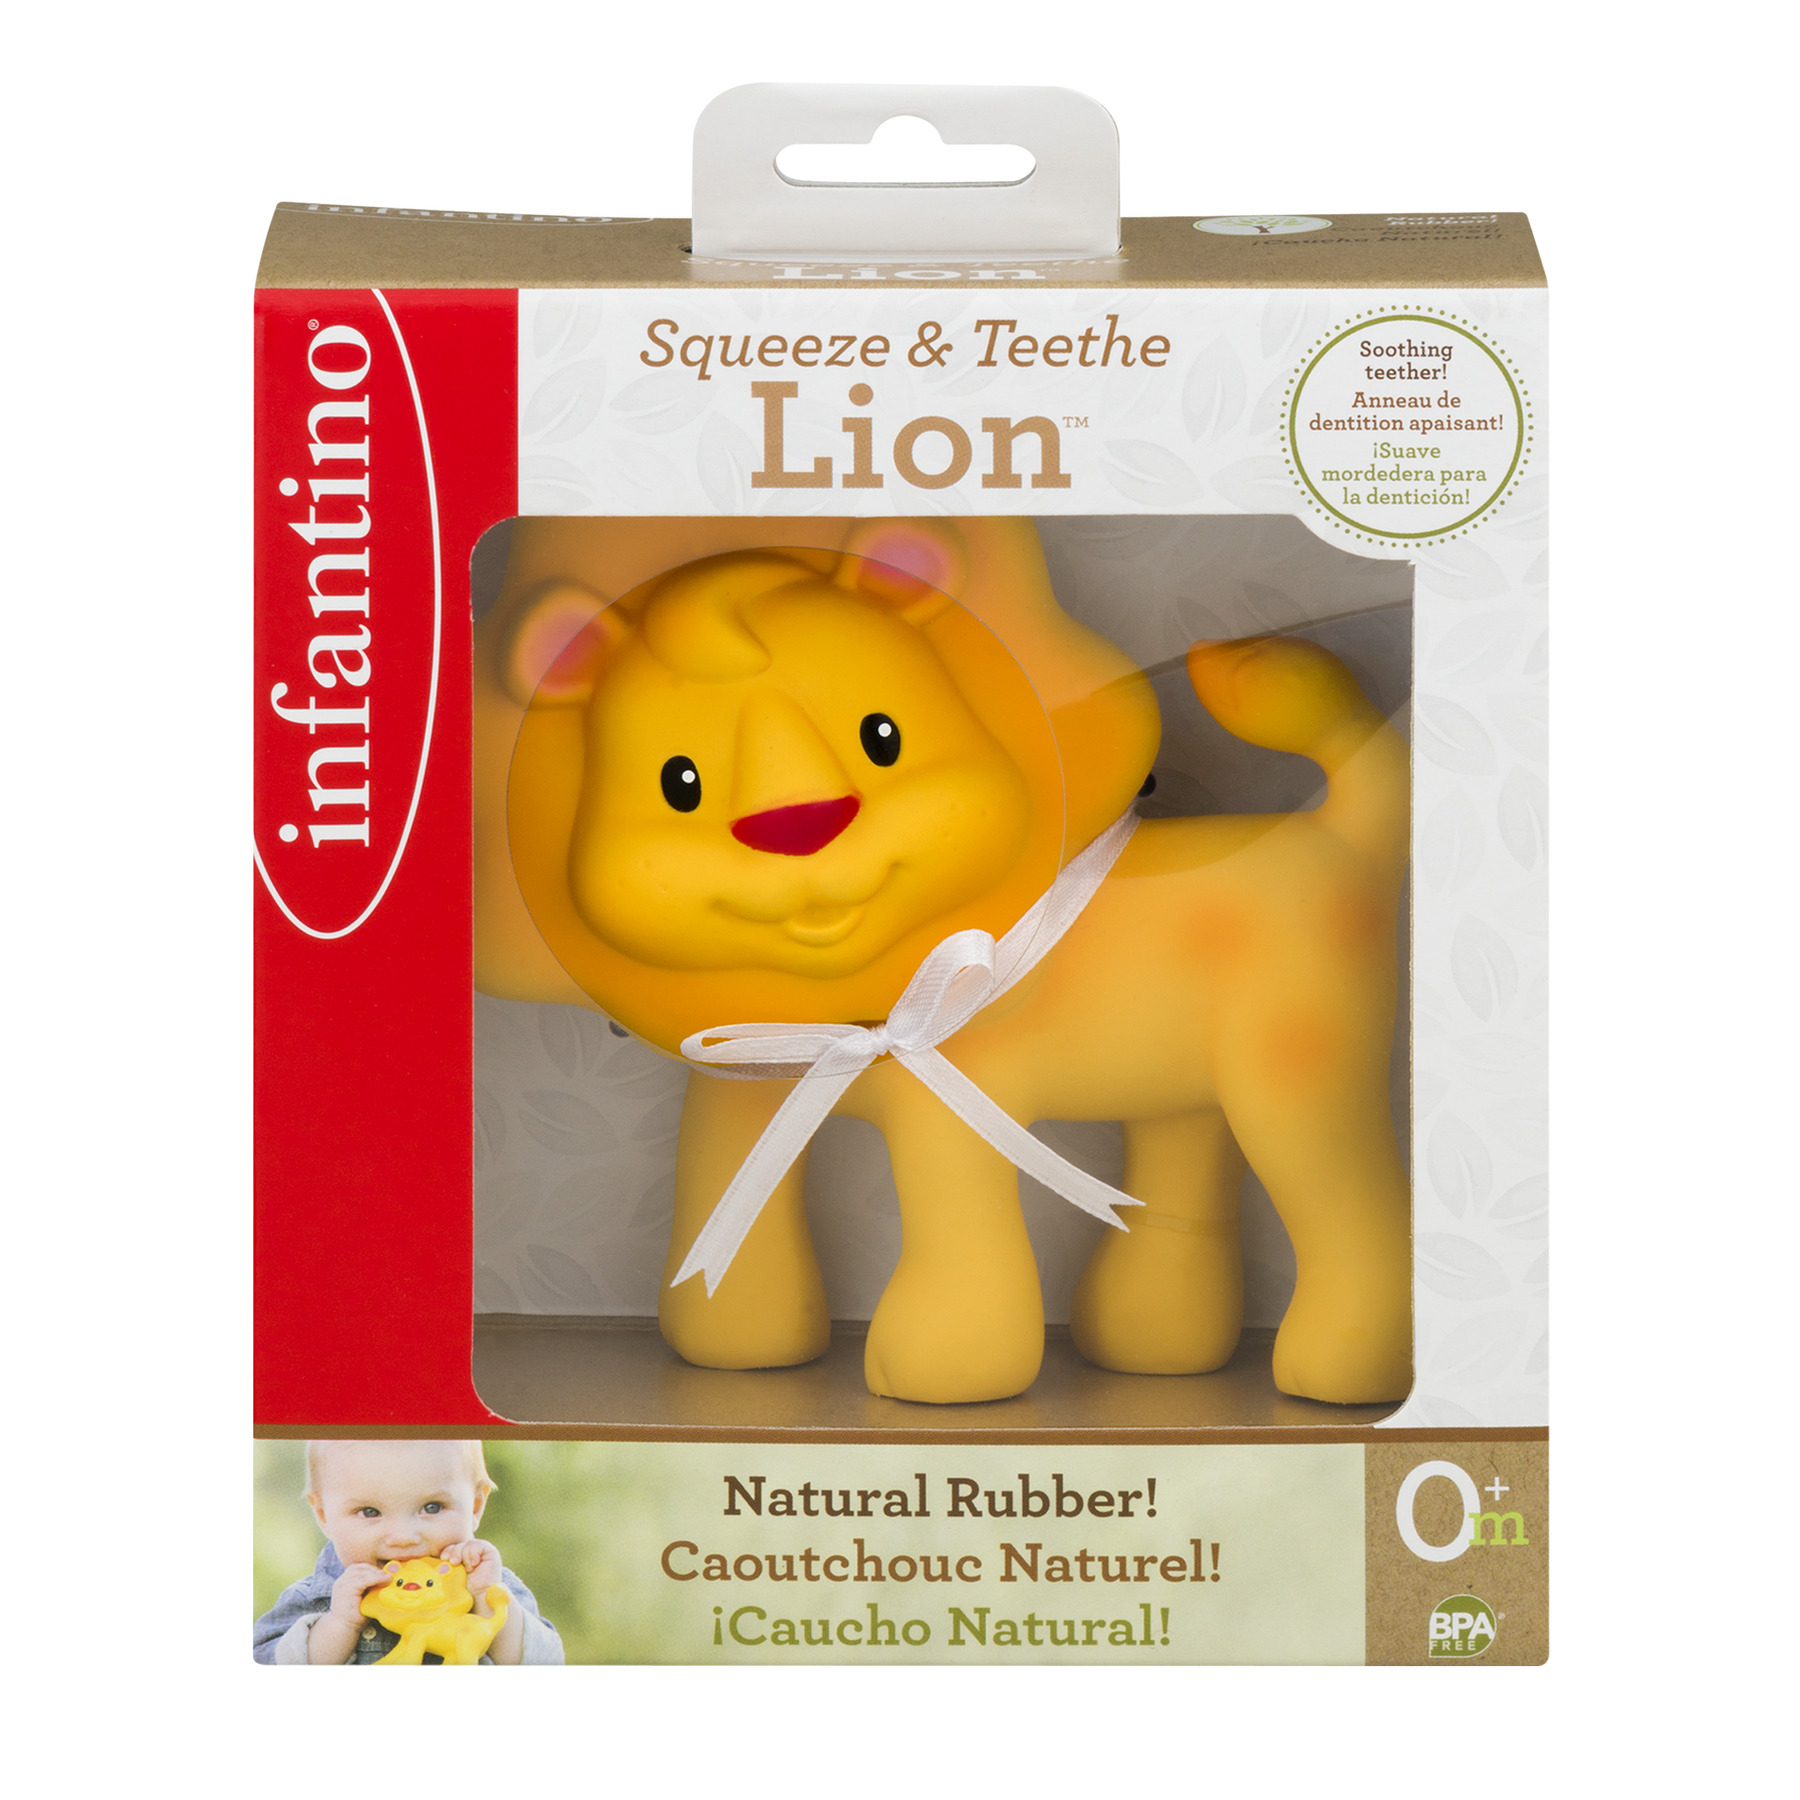 Infantino Squeeze & Teethe Lion 0+m, 1.0 CT